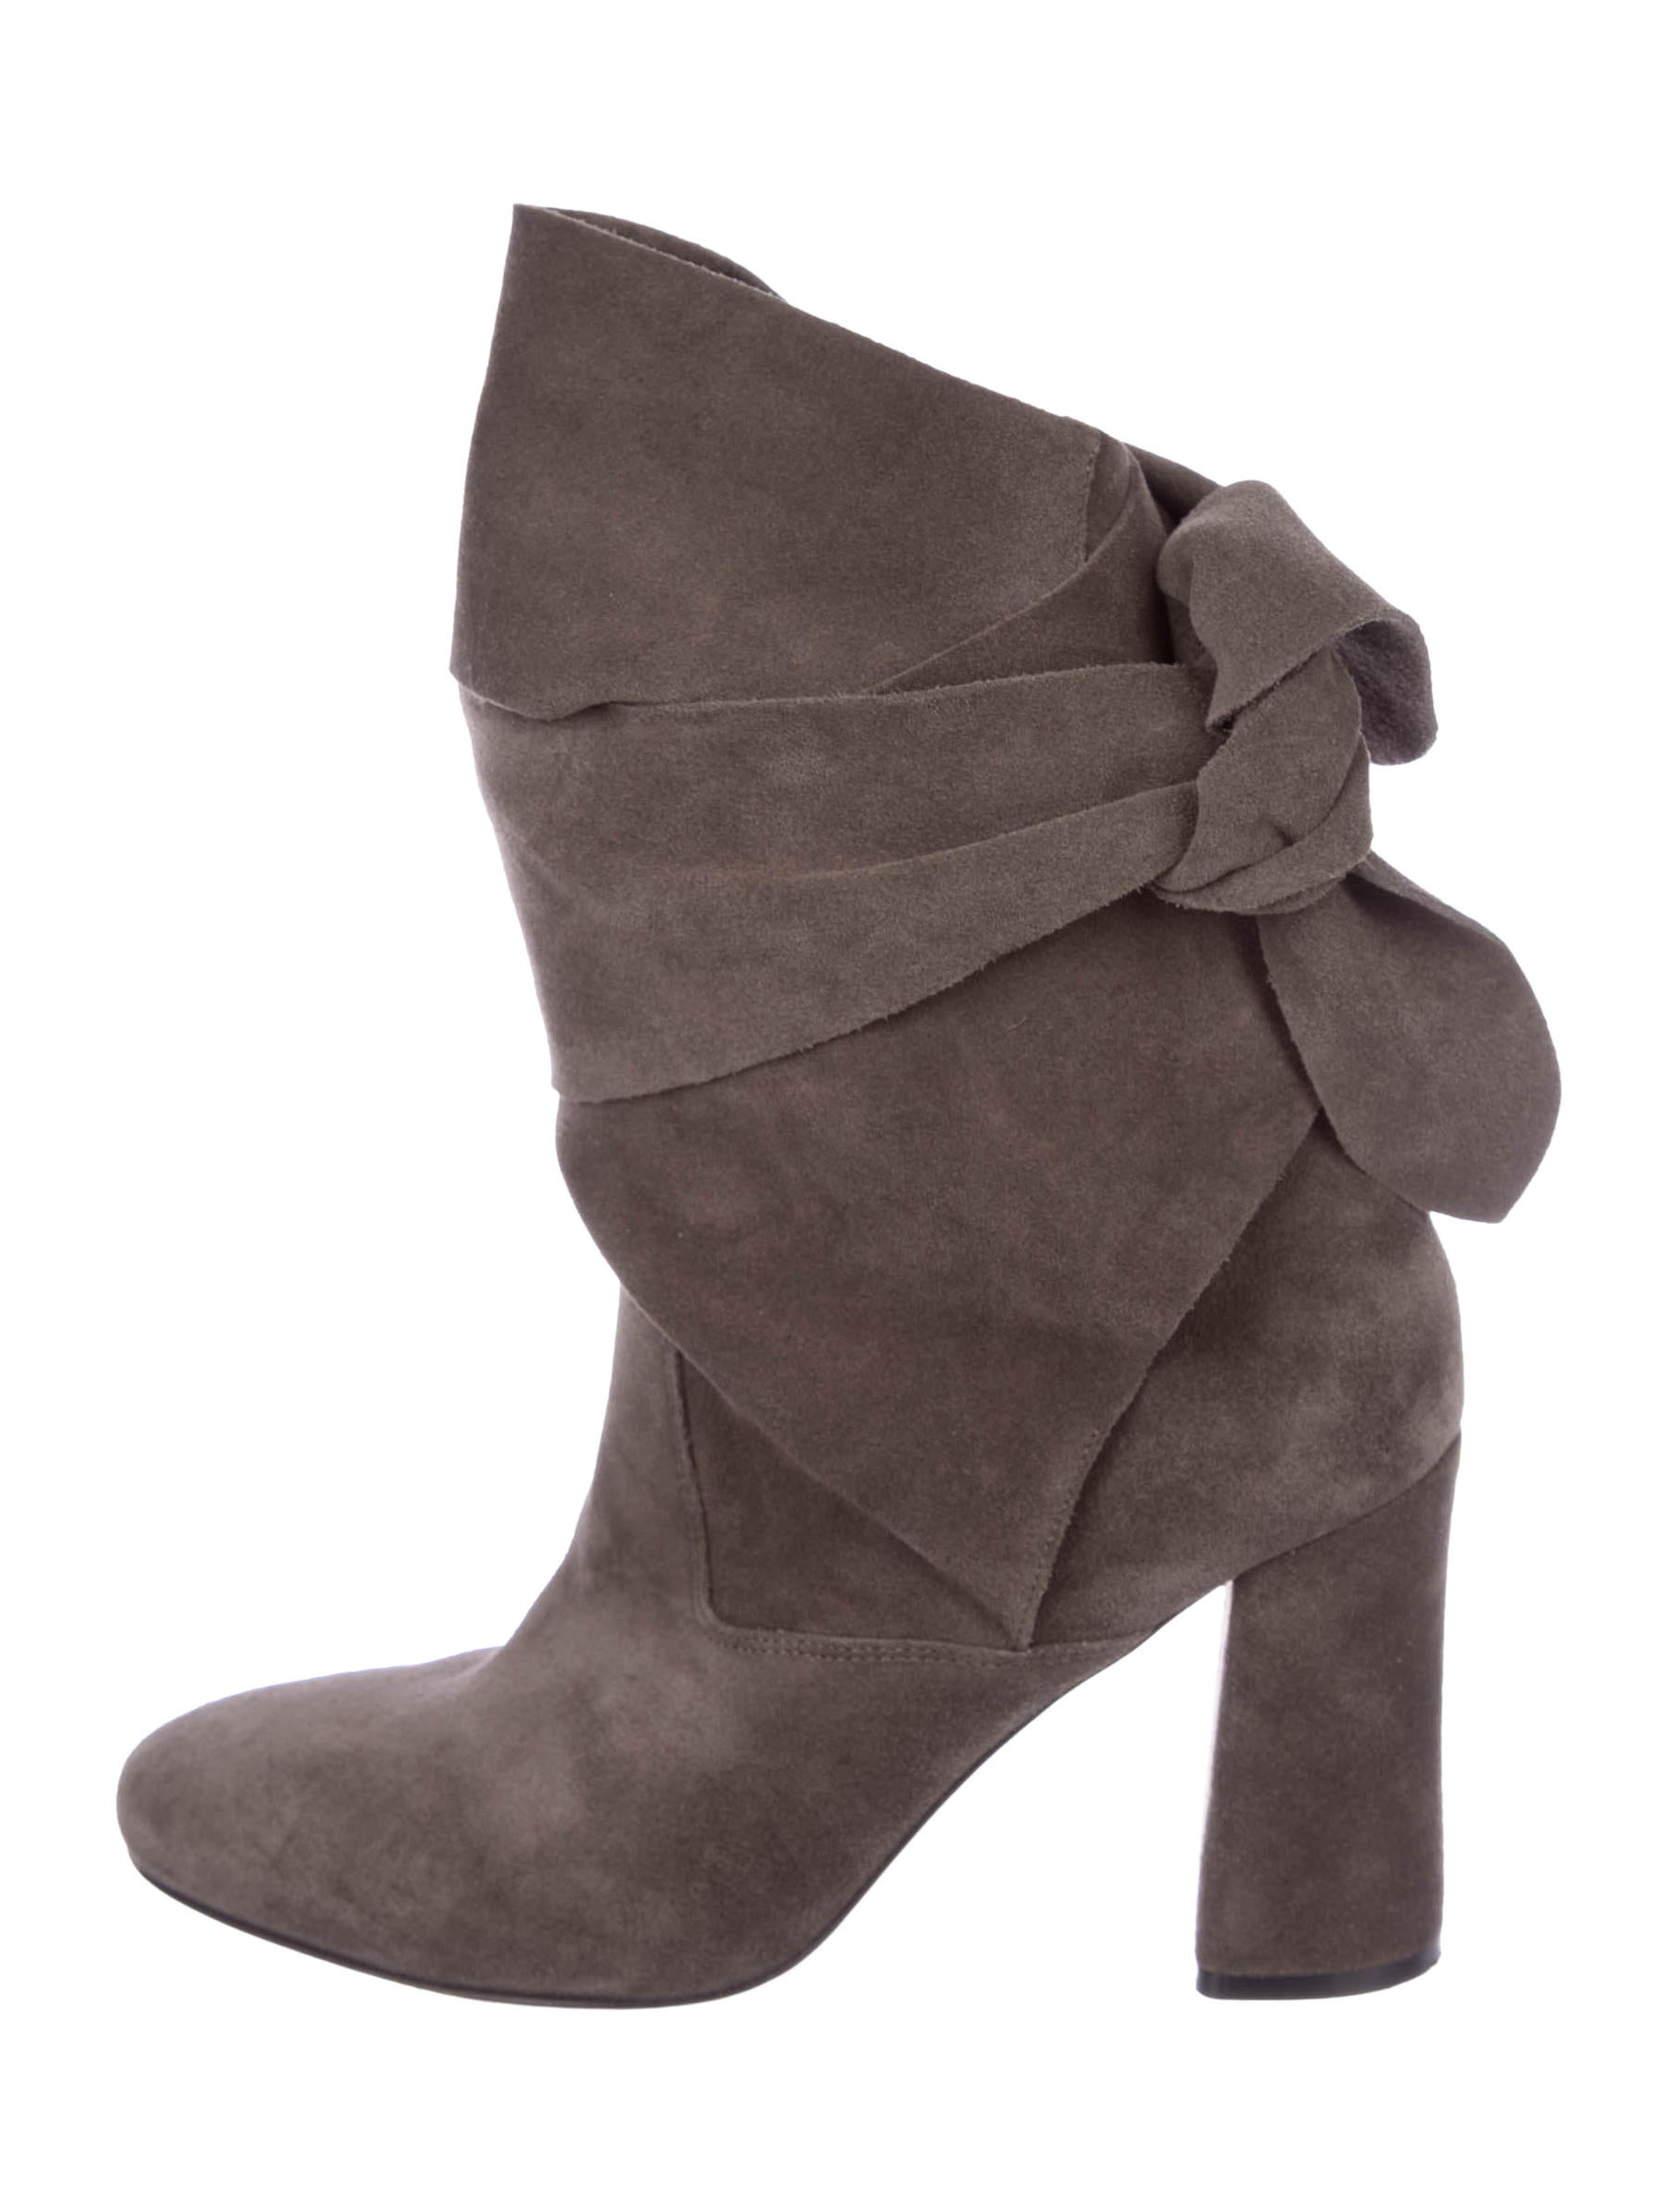 outlet discounts free shipping the cheapest Sigerson Morrison Lori Wrap-Around Ankle Boots visit cheap online discount big discount genuine for sale 3Yx0PW